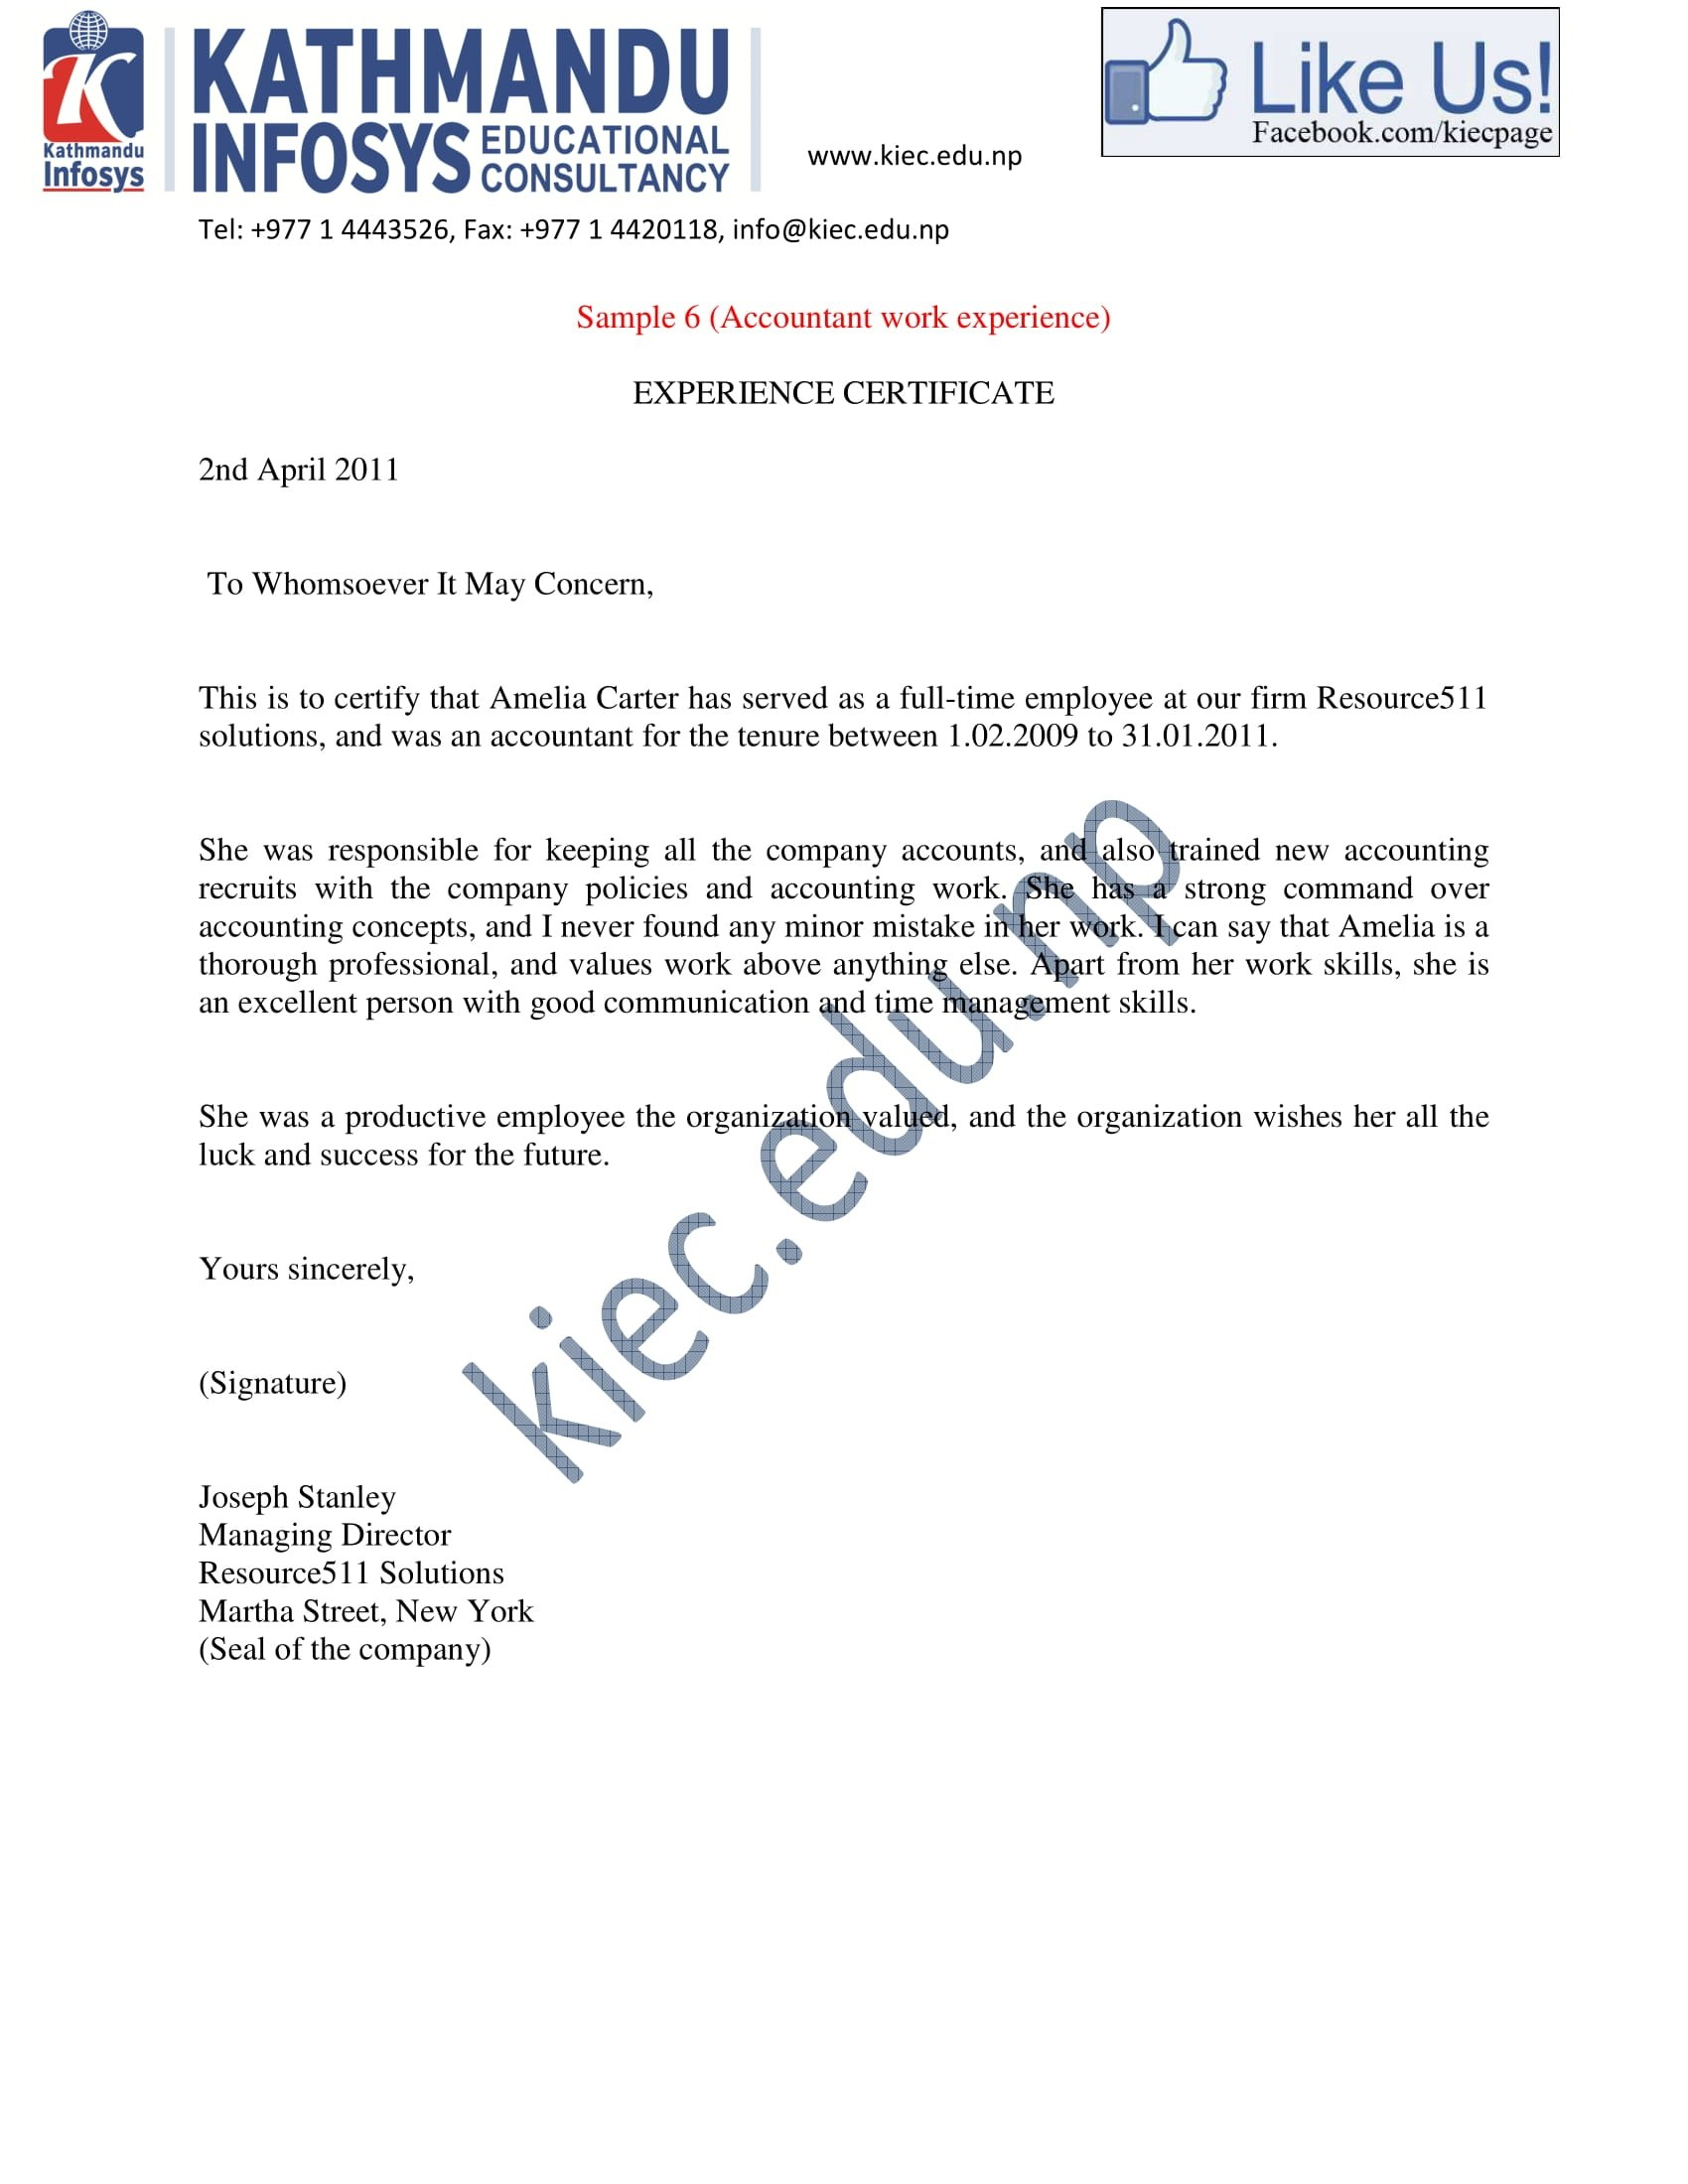 Experience Letter Templates In Pdf  Free  Premium Templates Throughout Officer Promotion Certificate Template